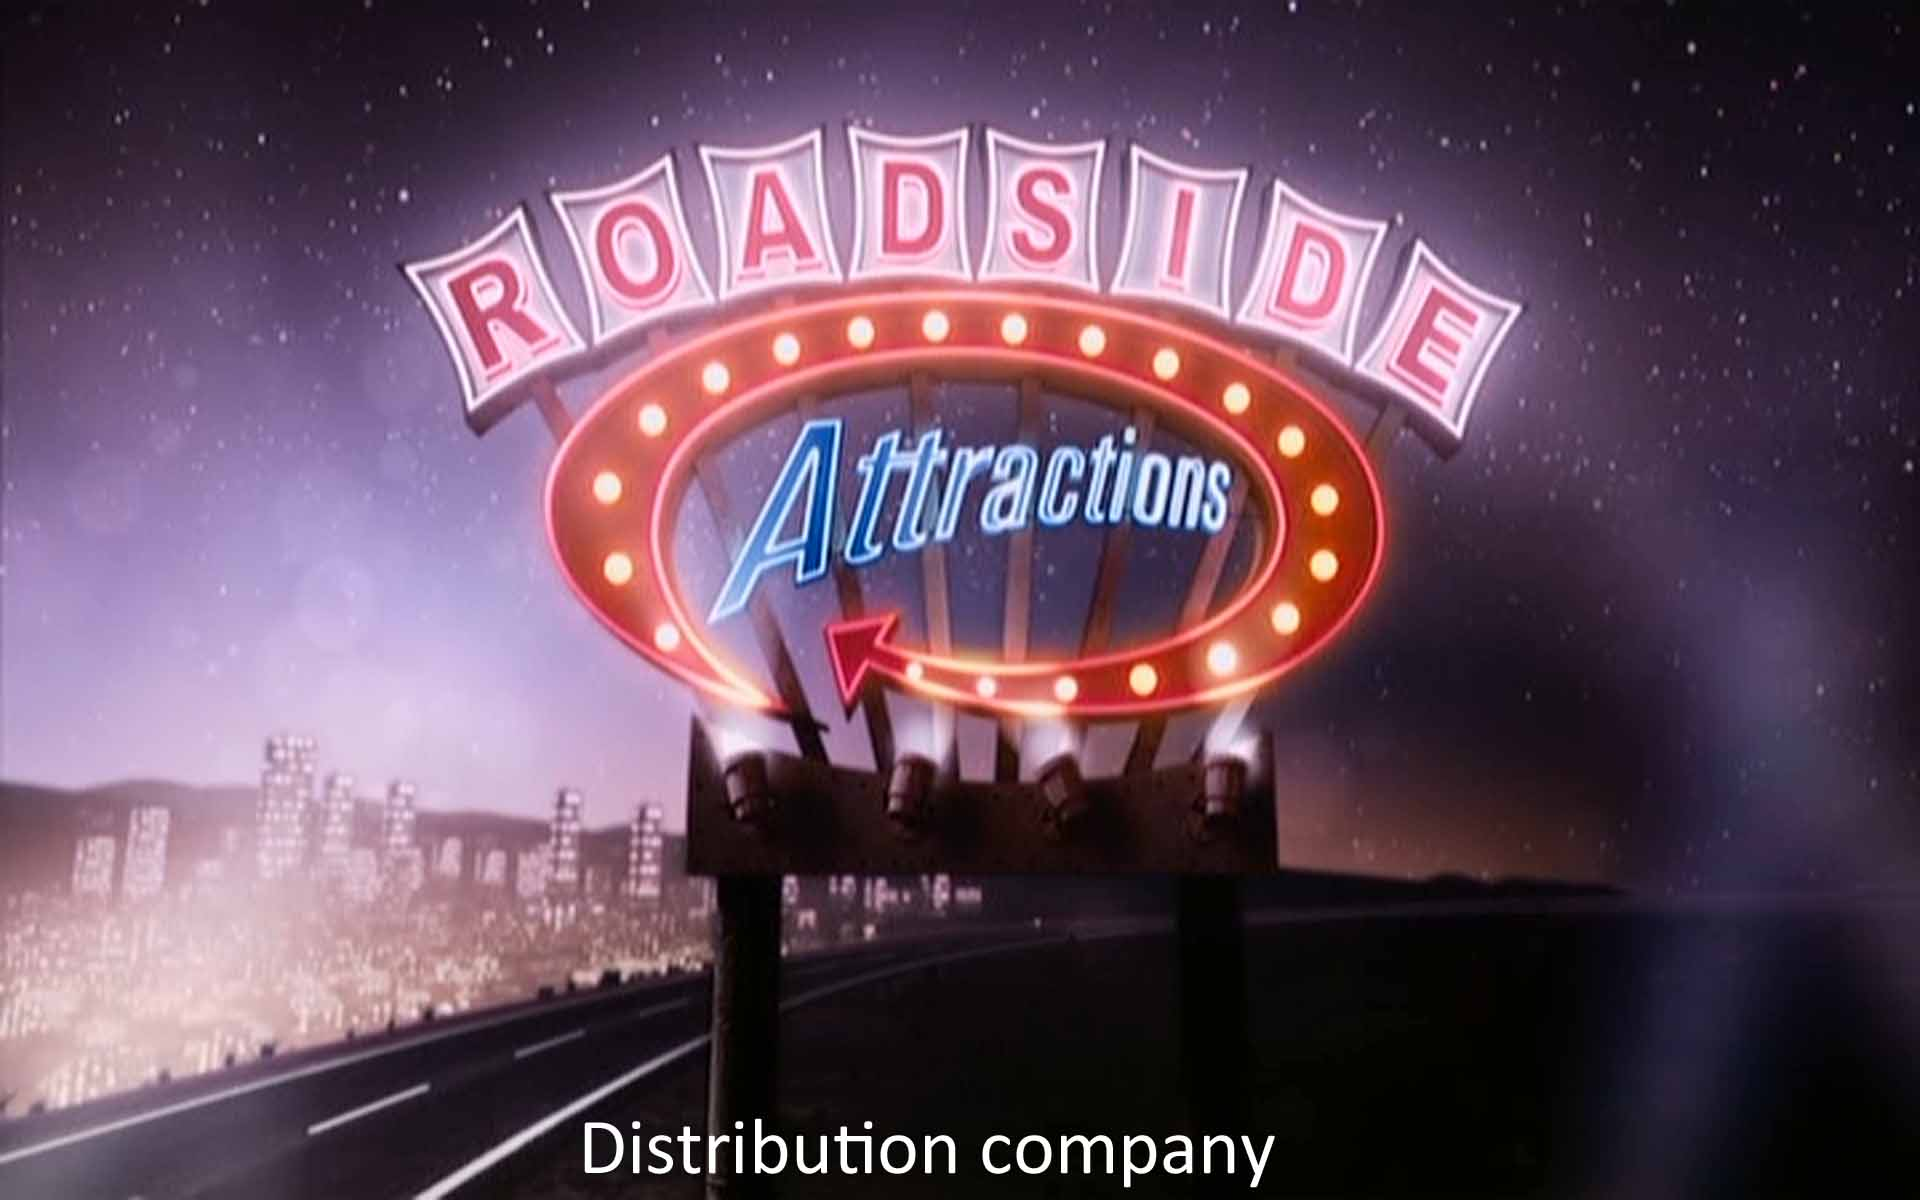 Distribution company